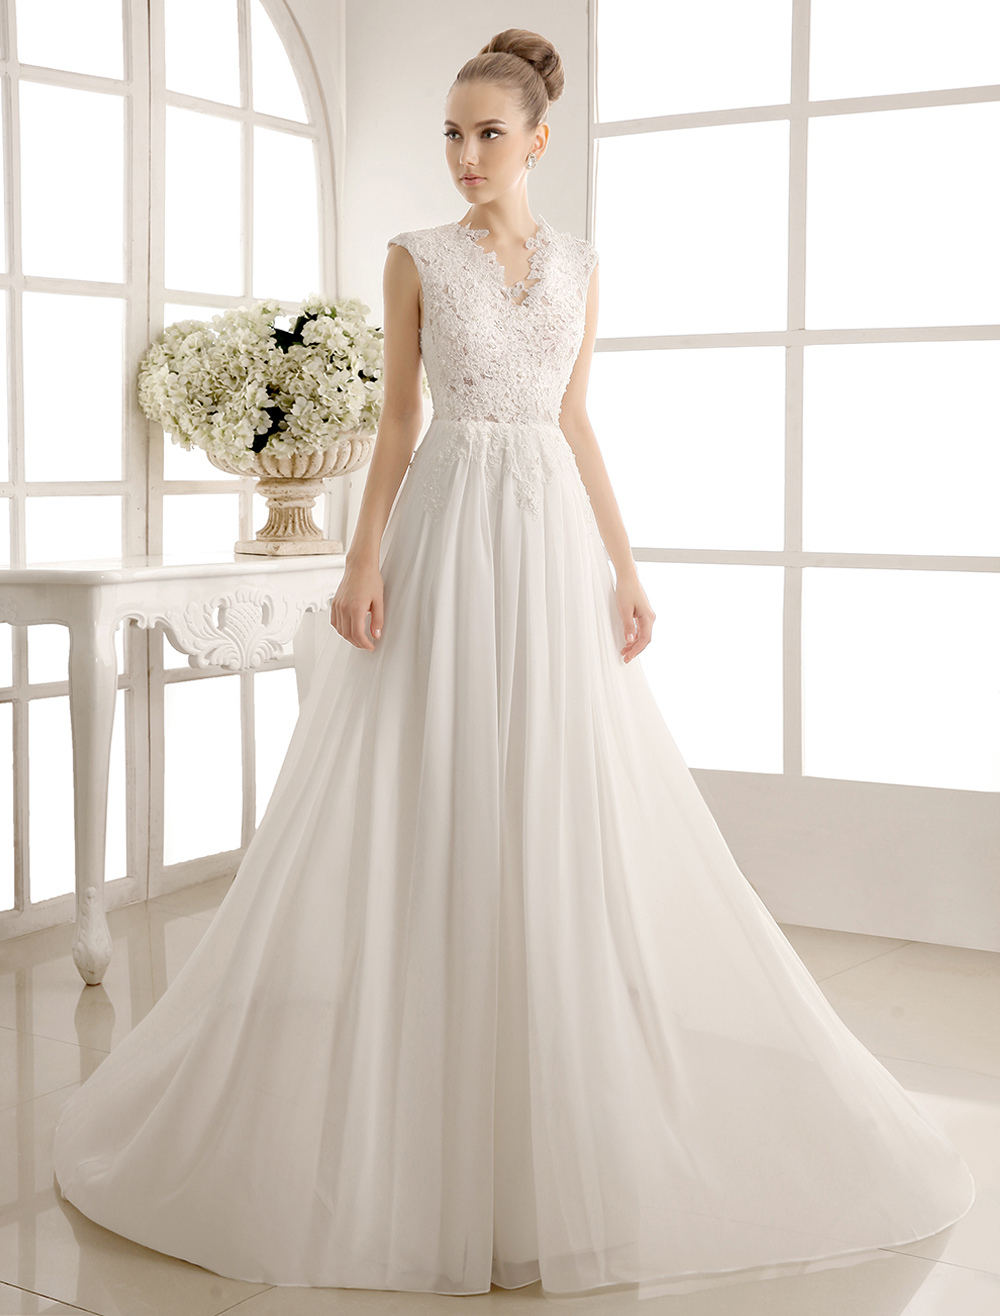 Wedding Dresses Chiffon V Neck Beach Bridal Dress Pearls Beaded Lace Ivory Bridal Gown